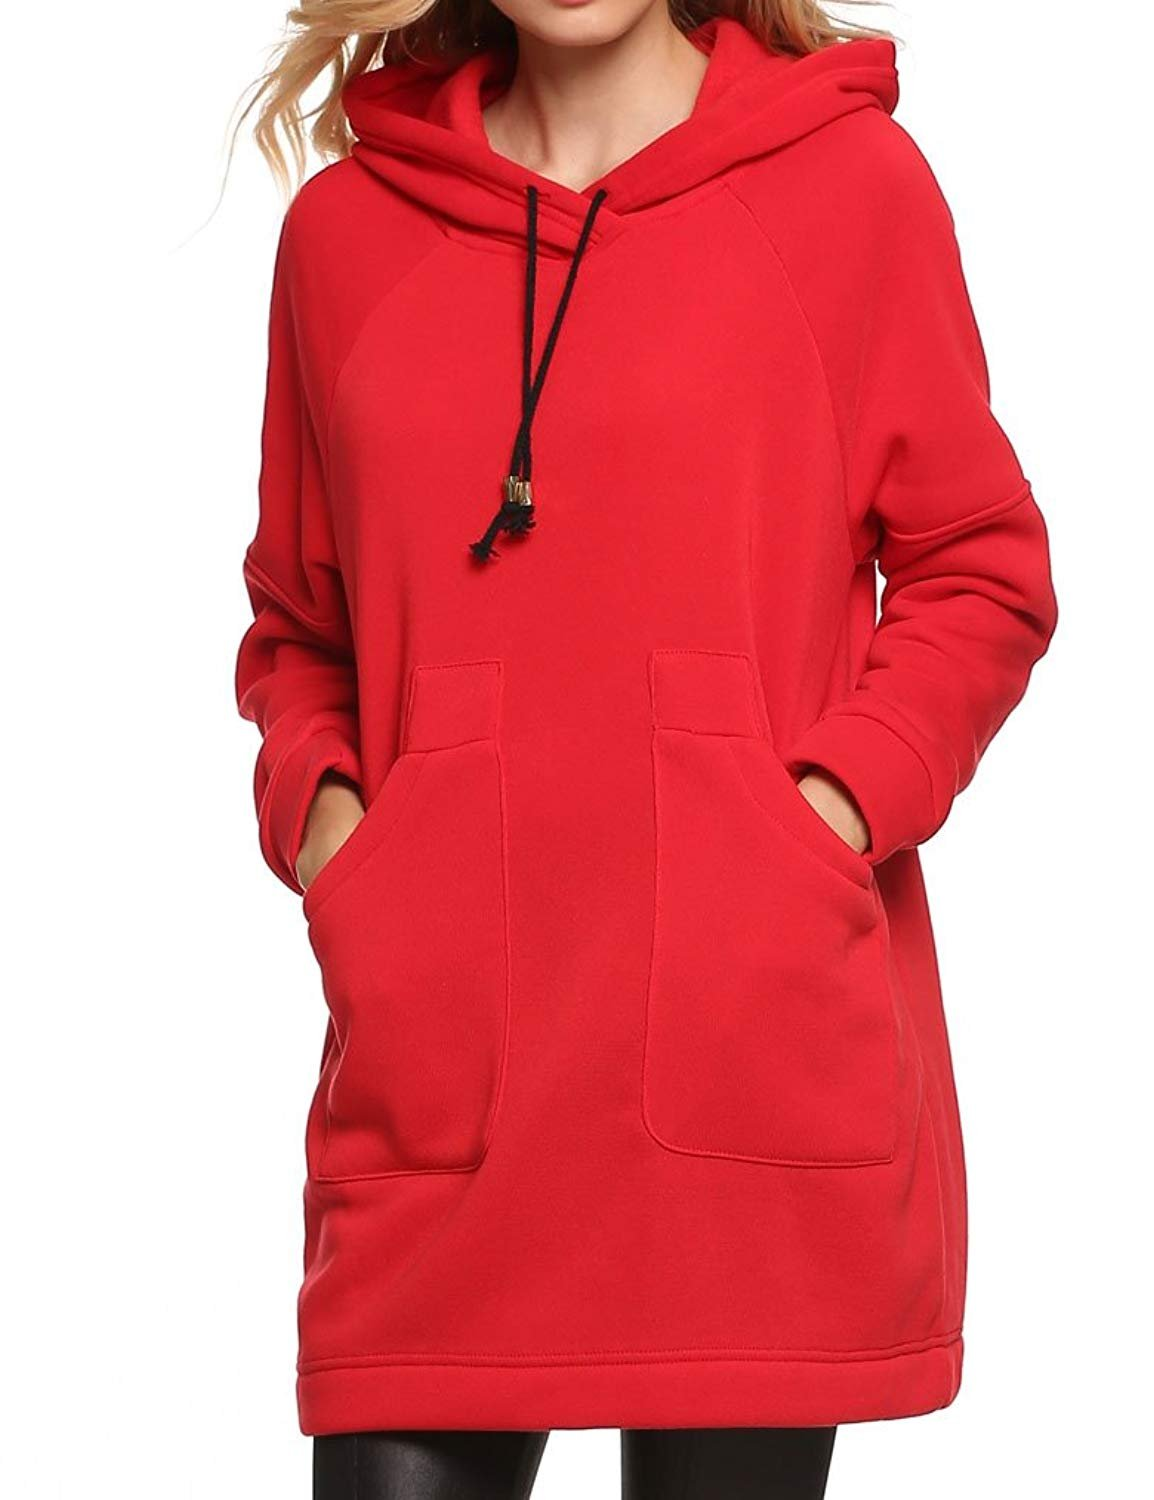 Qearl Women Autumn Loose Warm Pocket Pullover Hoodie Tunic Sweatshirt (XXL, Red)